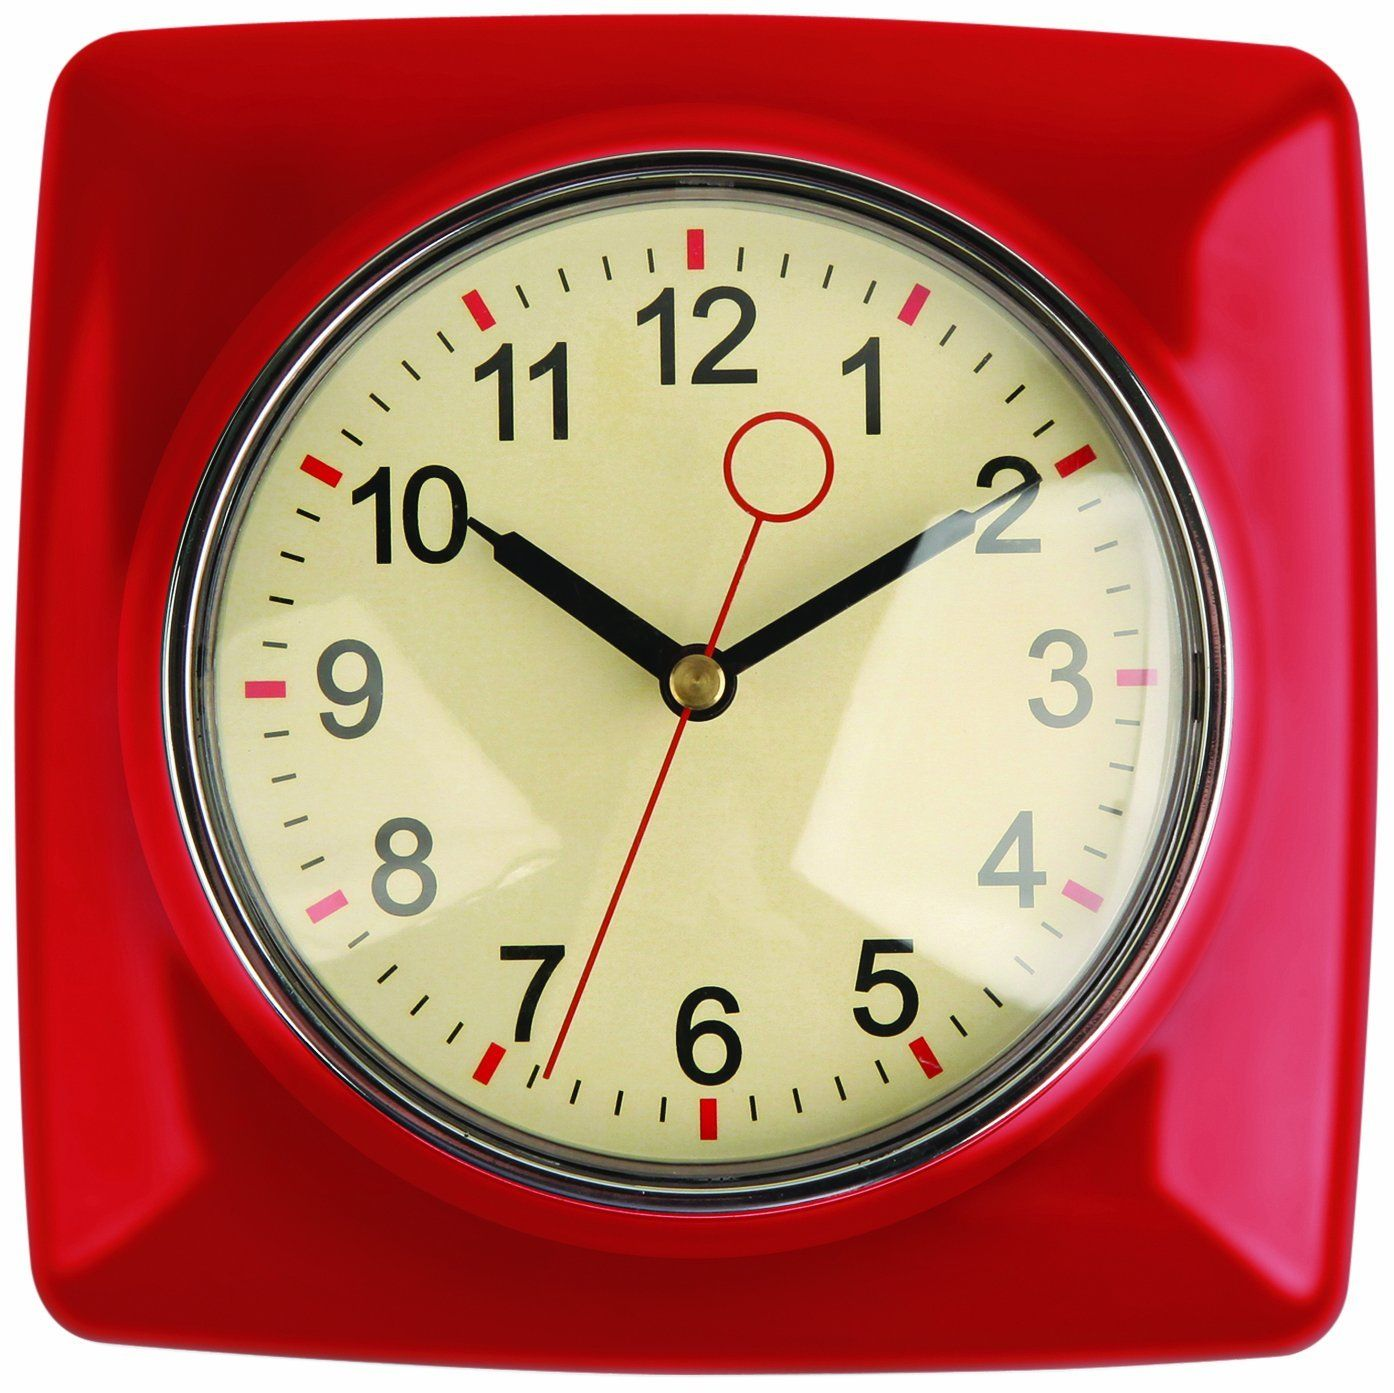 Modern Kitchen Clocks 50 39s Red Clock Google Search Home Decor Kitchen Wall